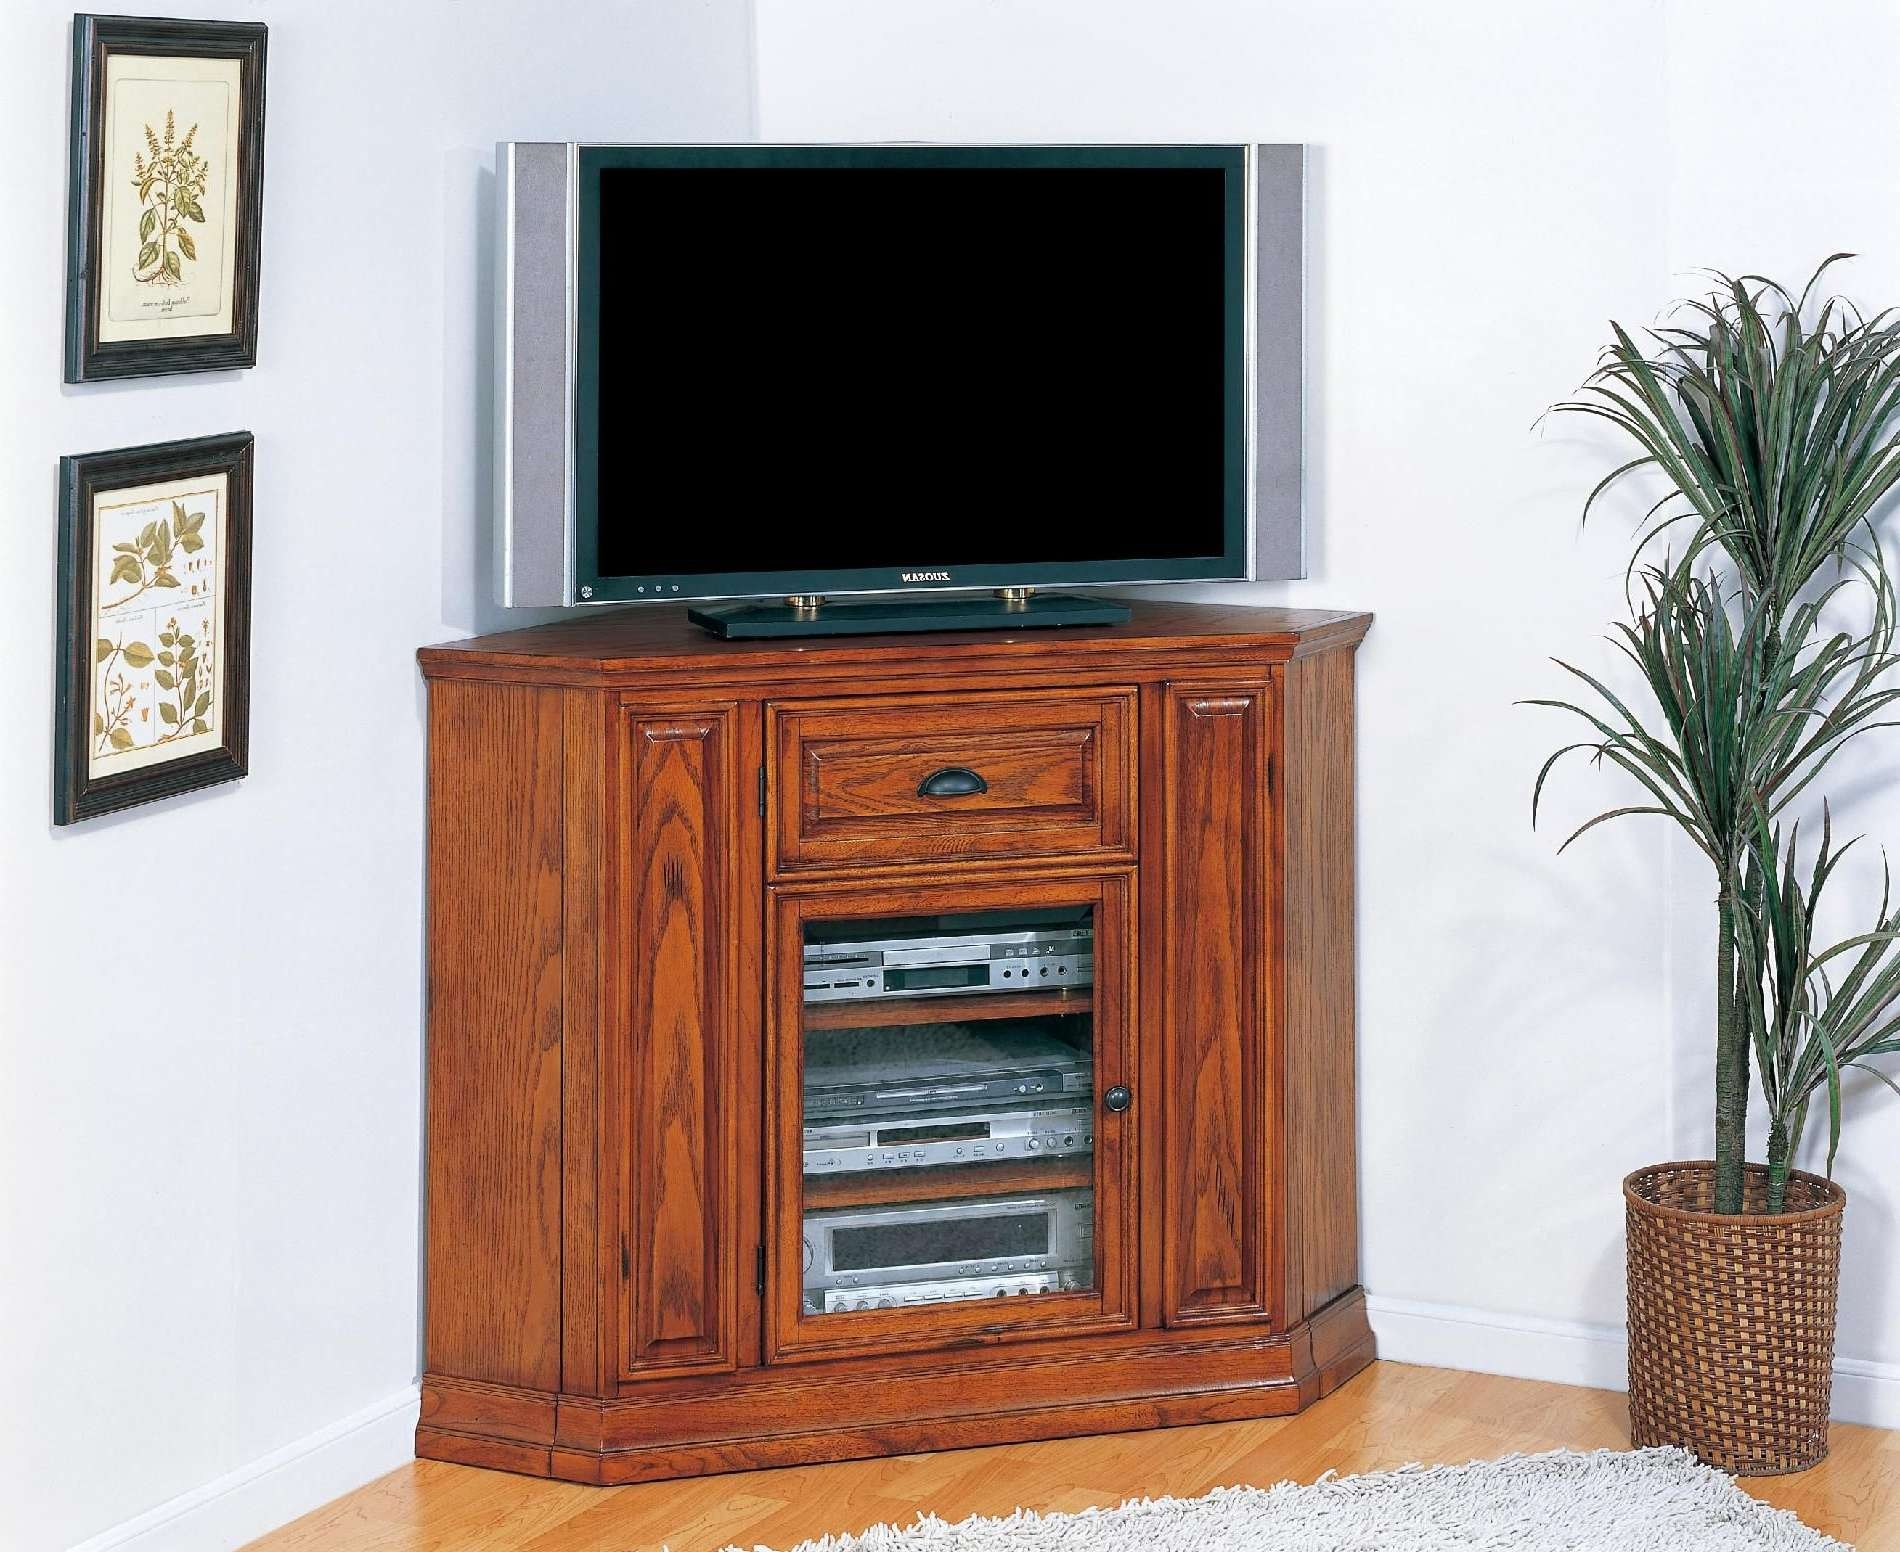 stand dark tv w novia doors stained screens cabinets theatre platform stands cherry cabinet cocoa solid glass in nc er shelf bdi home flat hutch corner cc